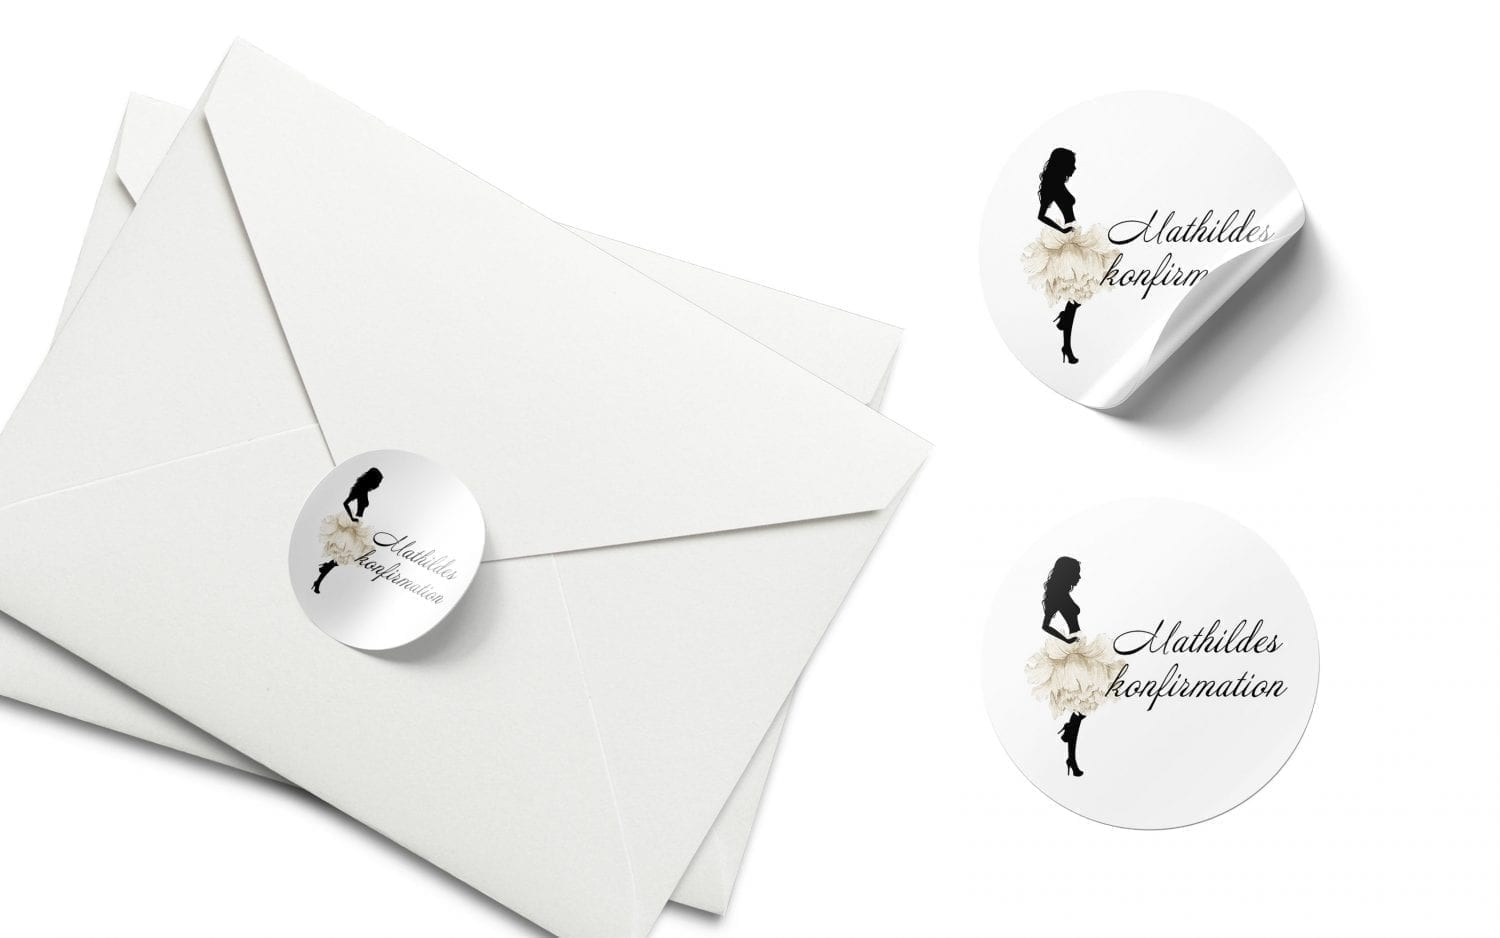 stickers konfirmation silhuette white